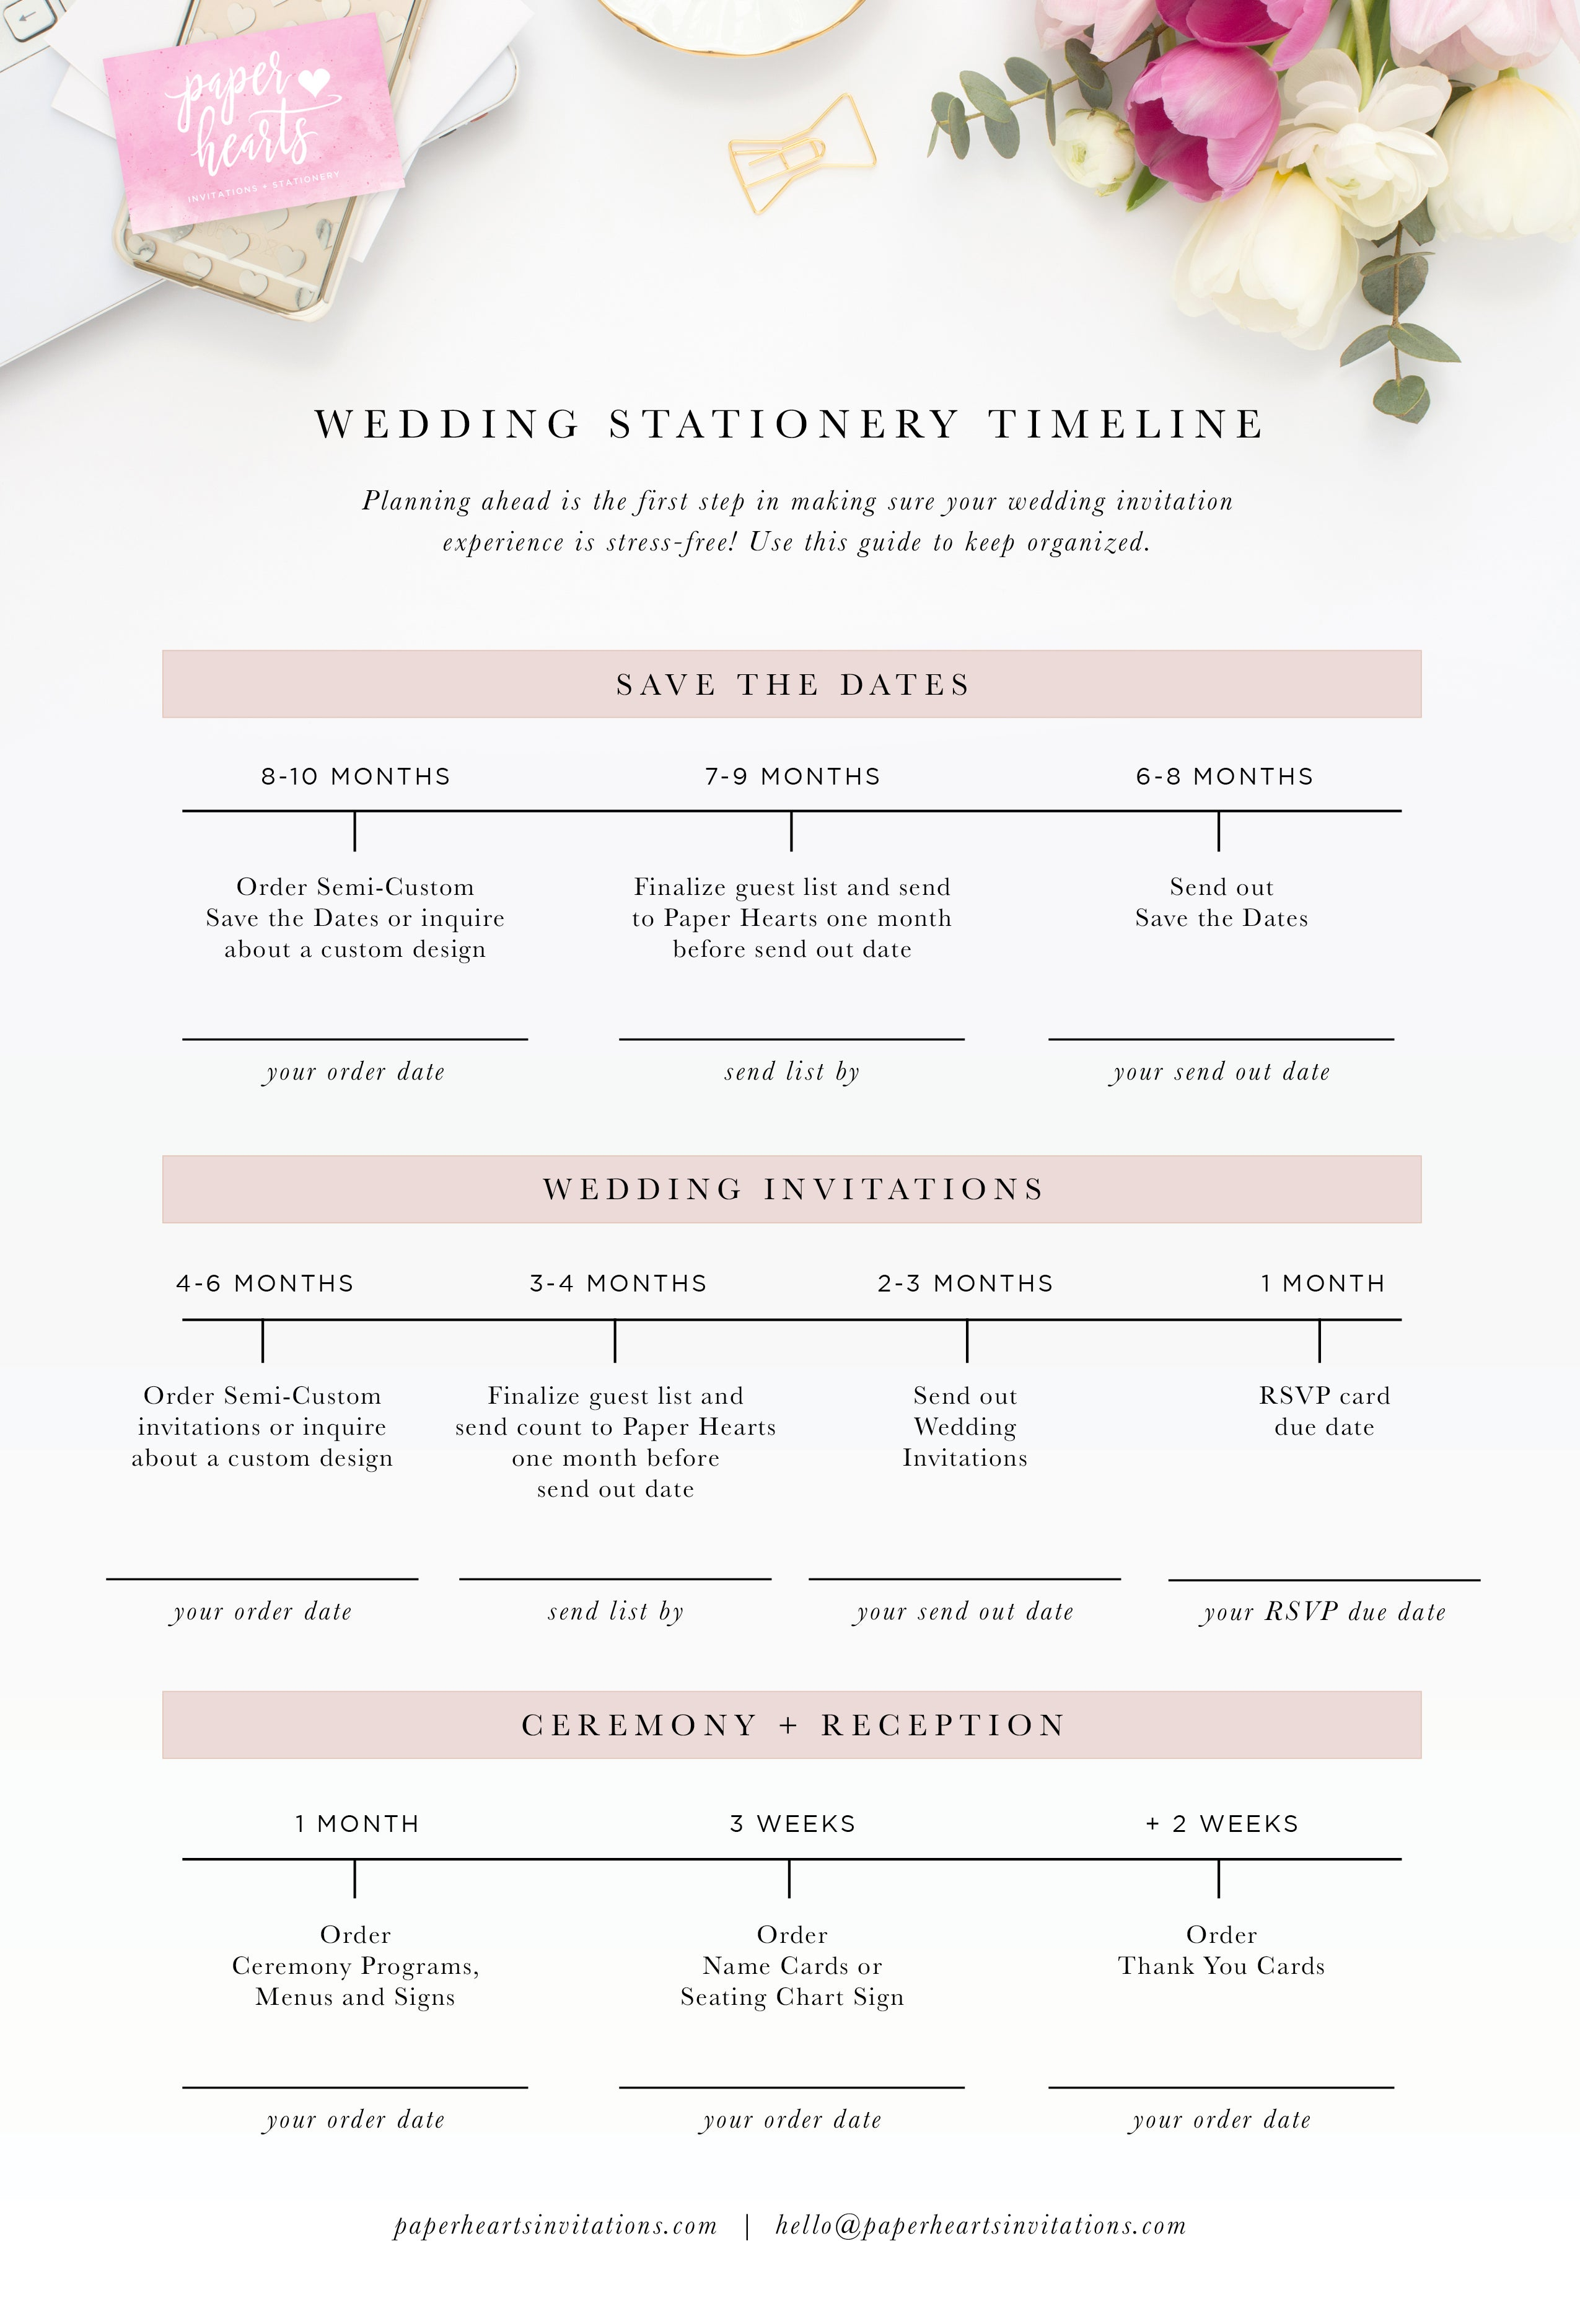 Paper Hearts Wedding Stationery Timeline